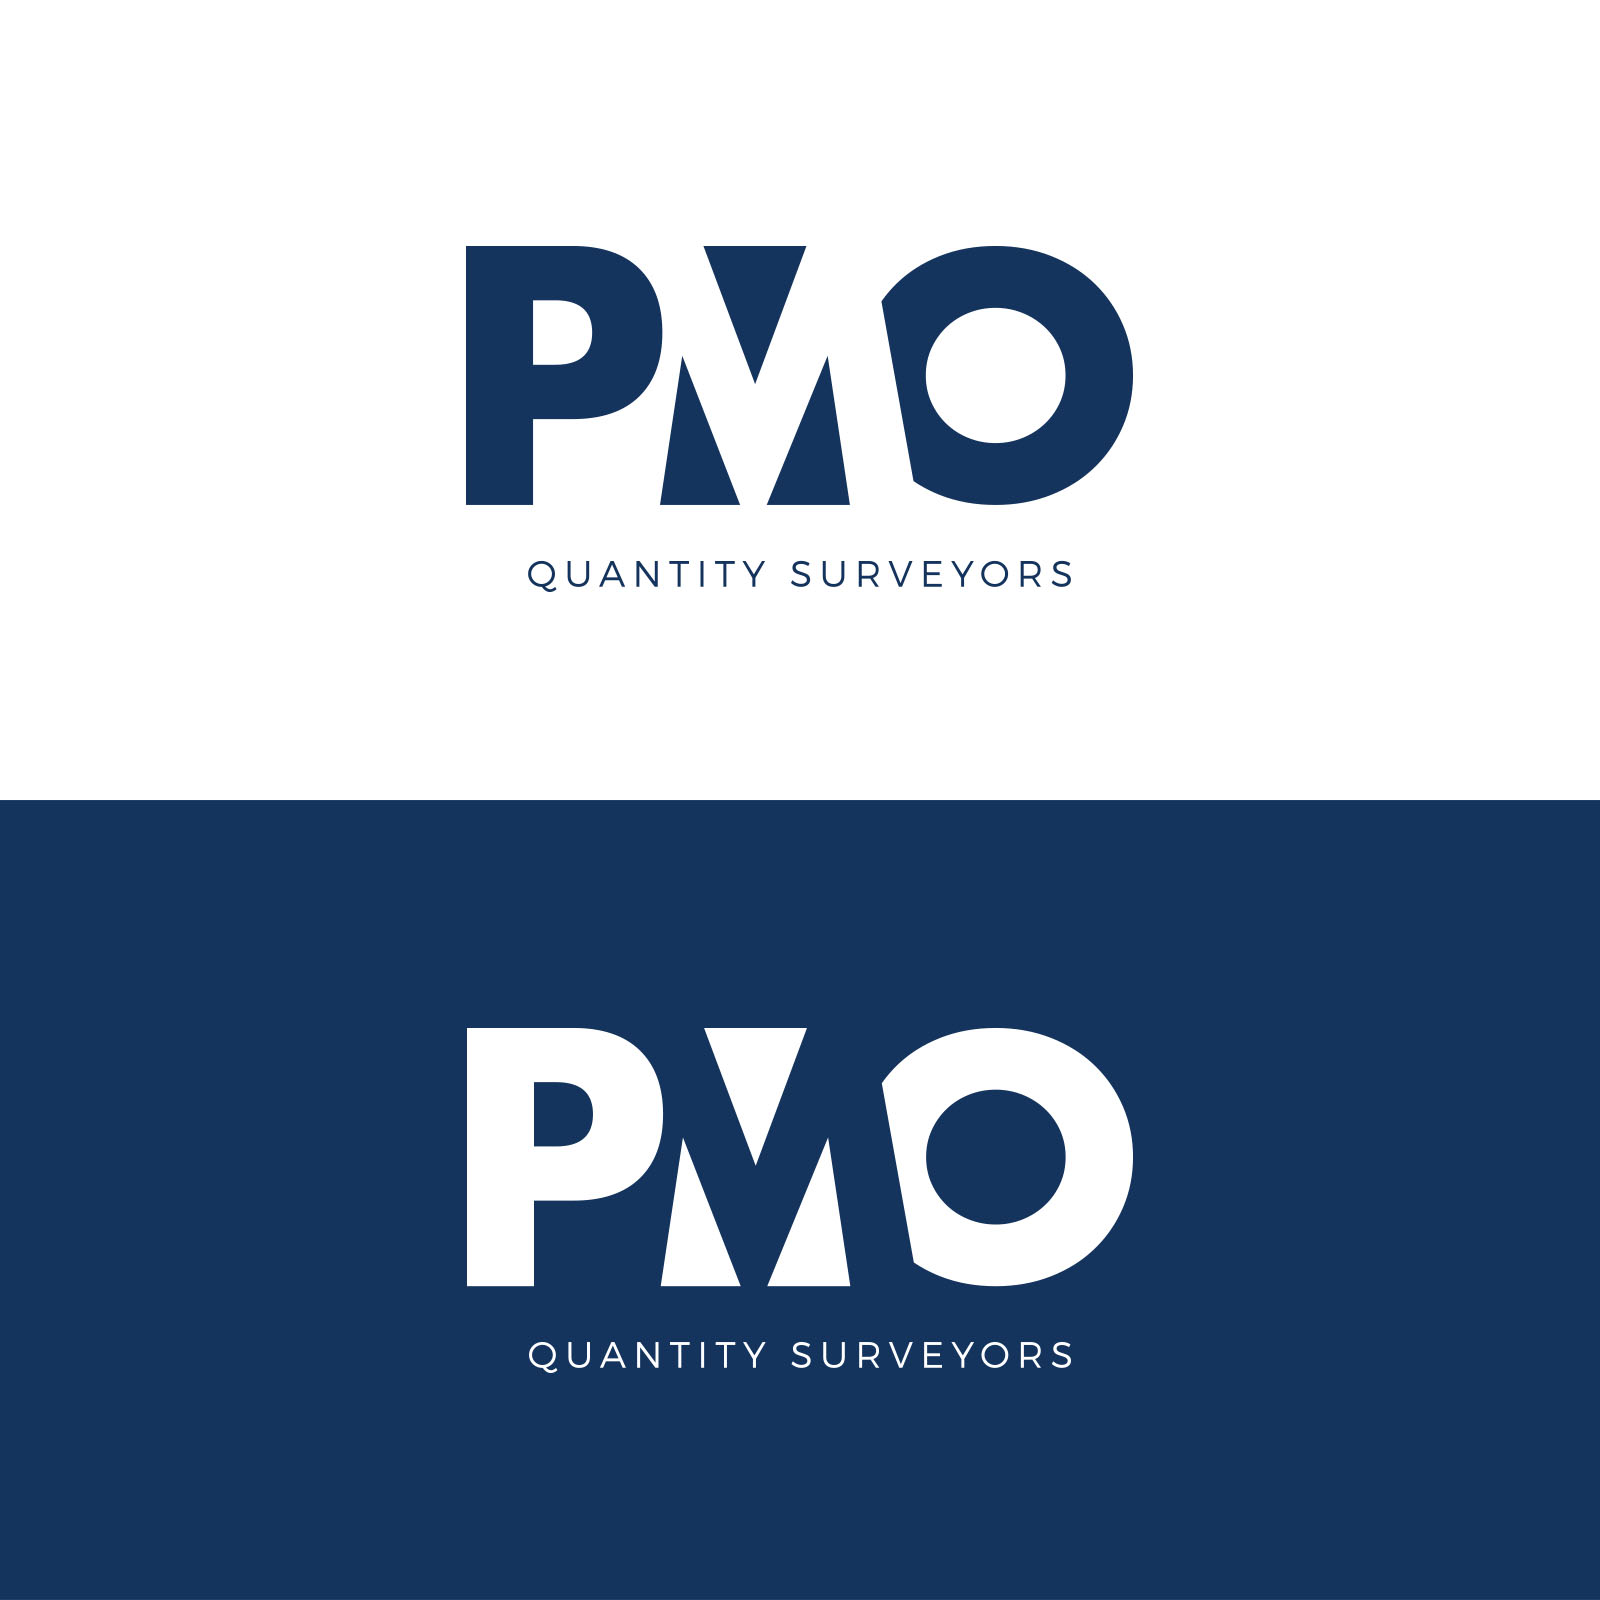 PMO Quantity Surveyors